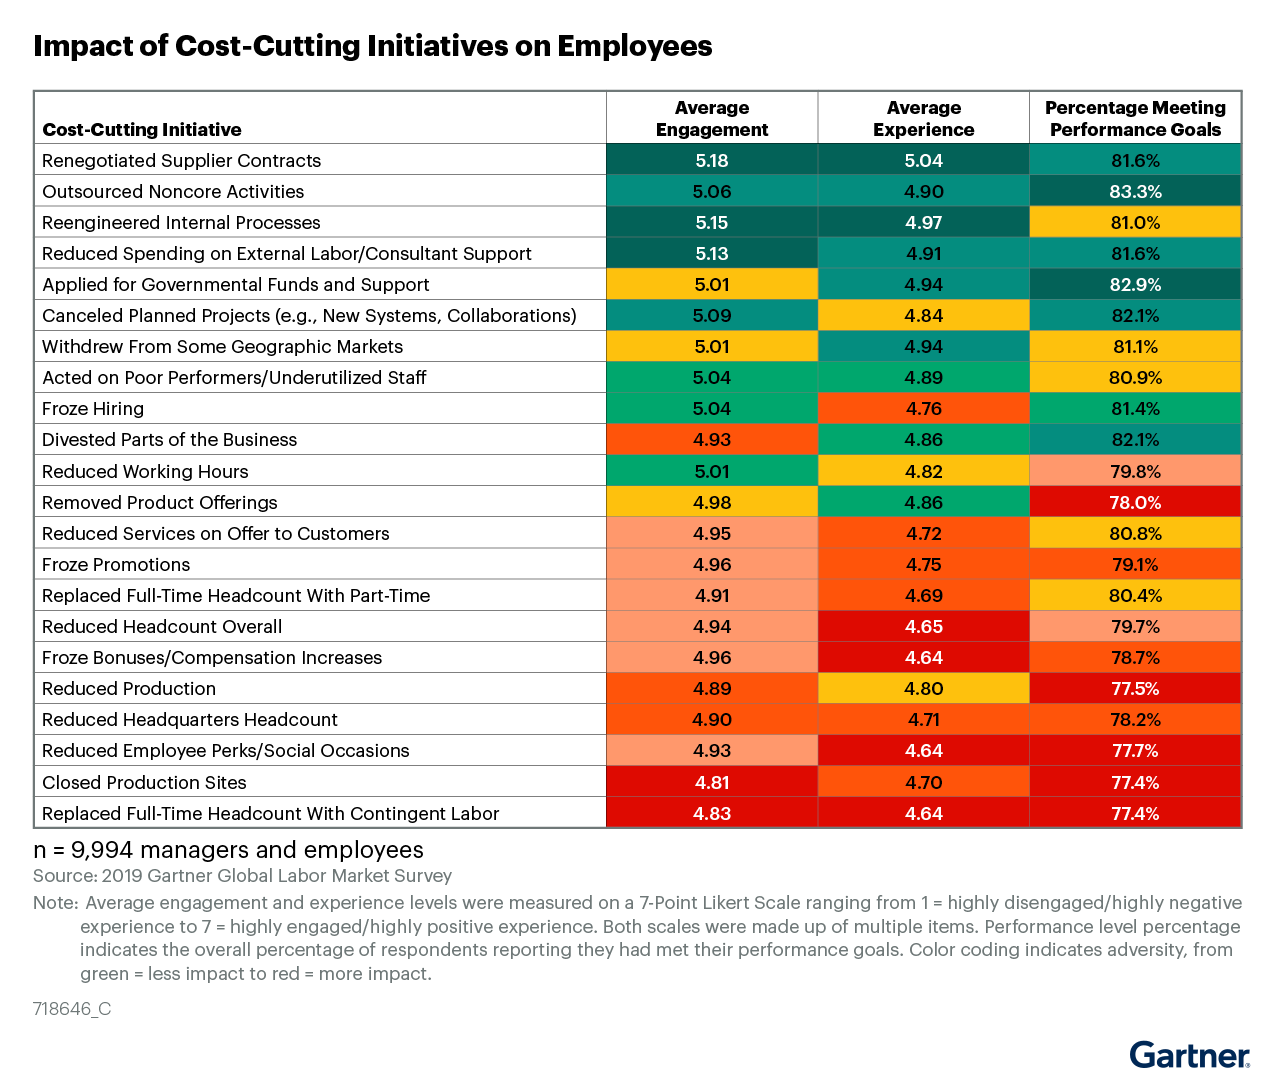 Figure 2: Impact of Cost-Cutting Initiatives on Employees